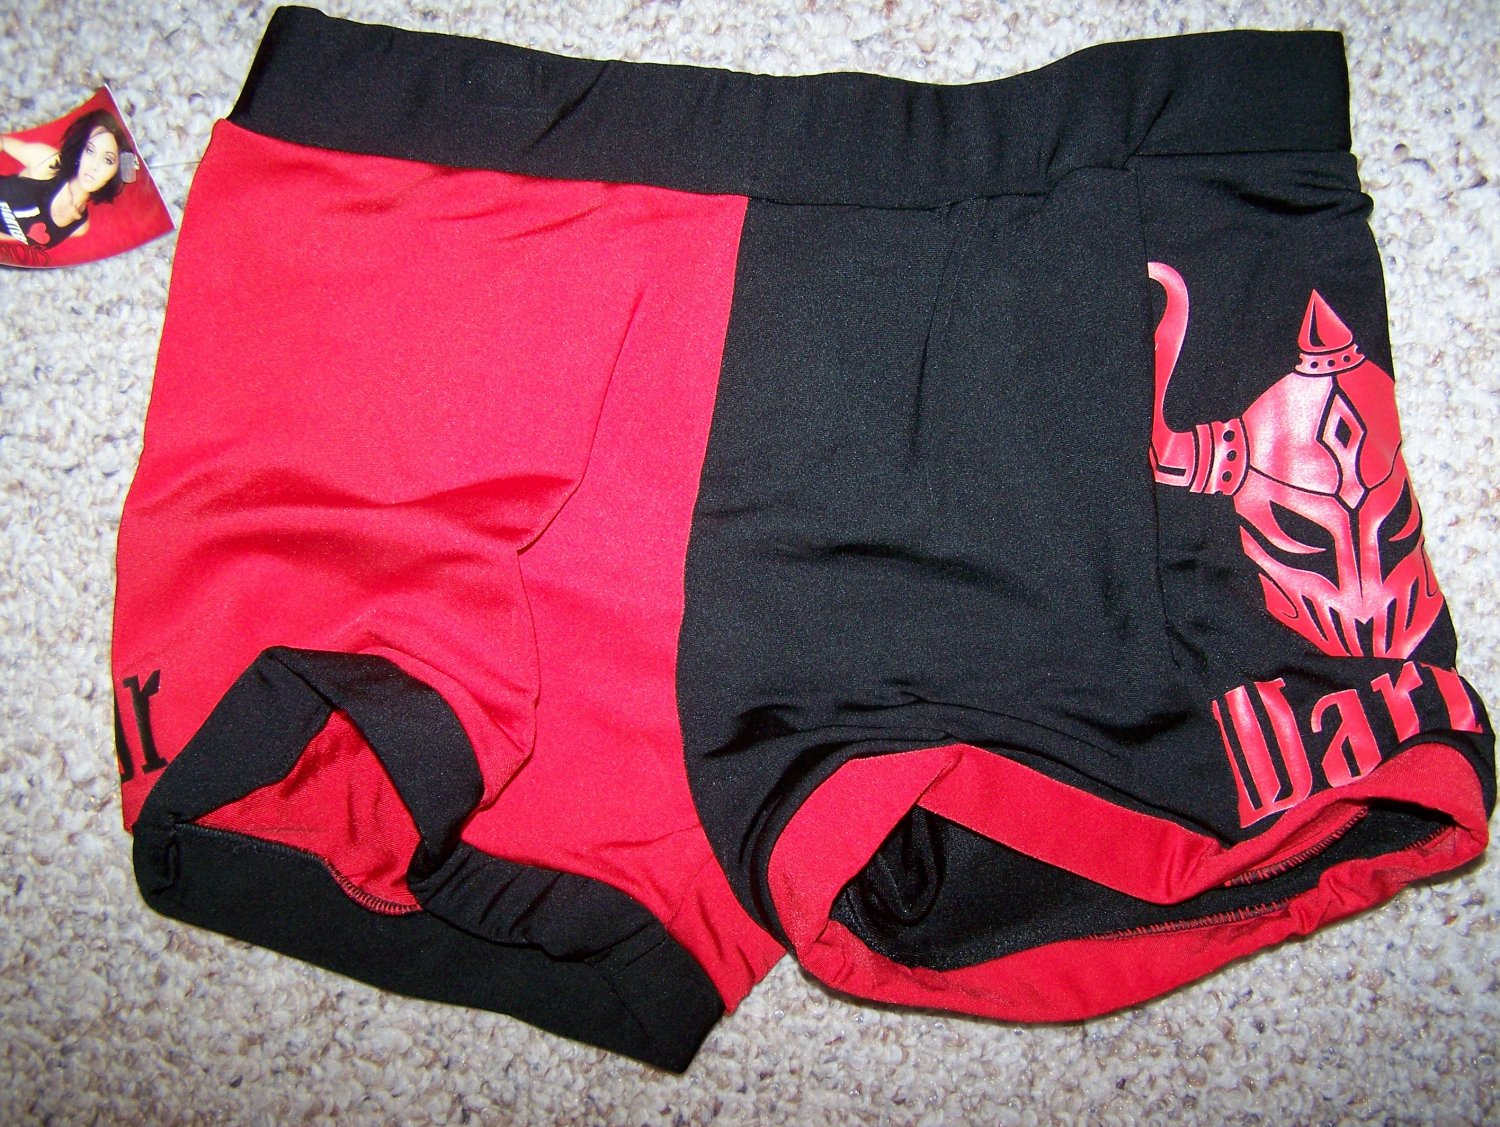 Warrior Wear Fighting Shorts - Red/Black - Med